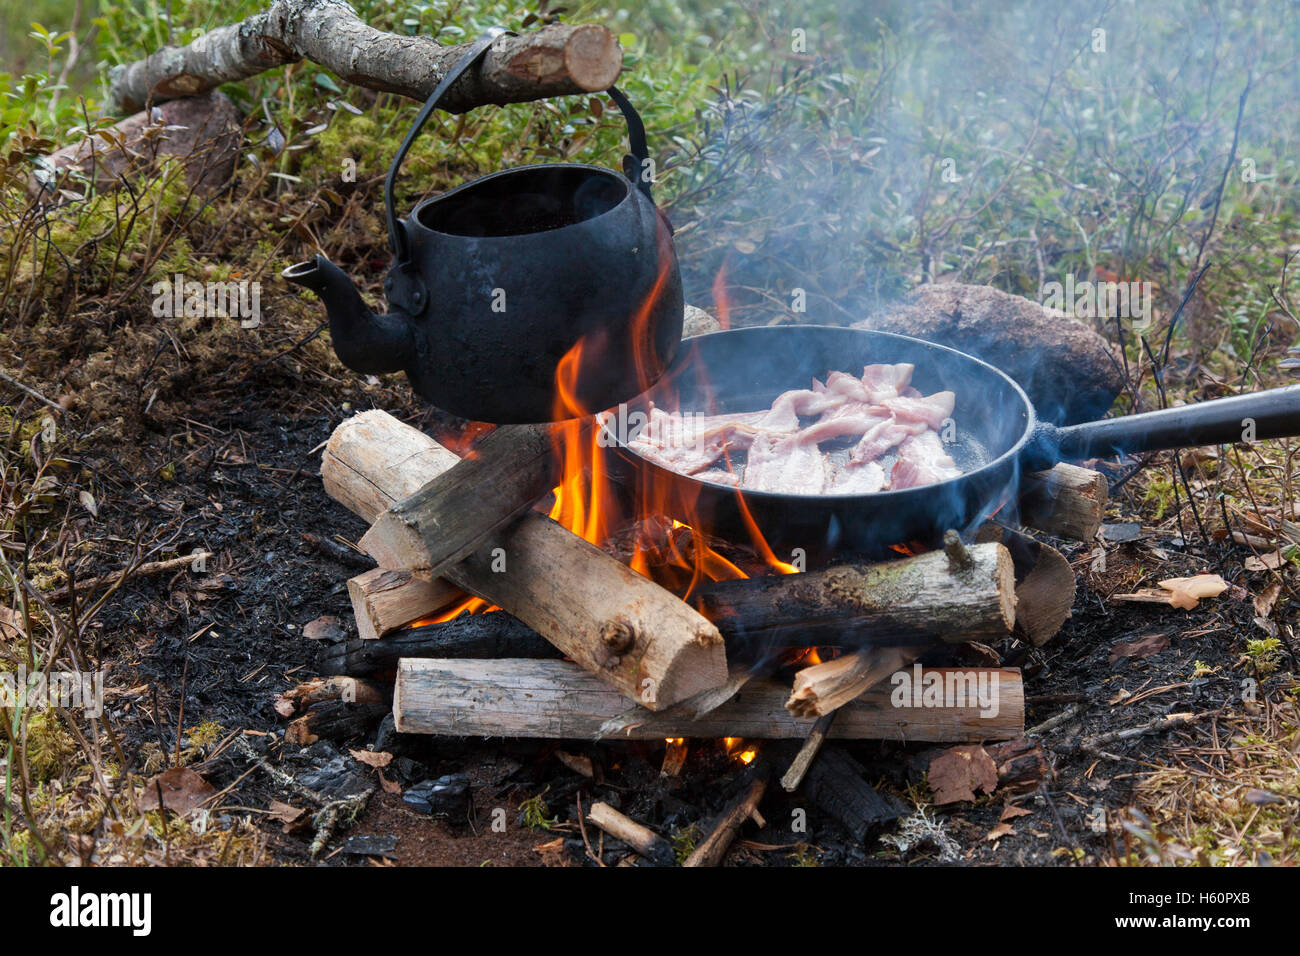 Blackened tin kettle boiling water and pan cooking bacon over flames from campfire during hike in forest - Stock Image